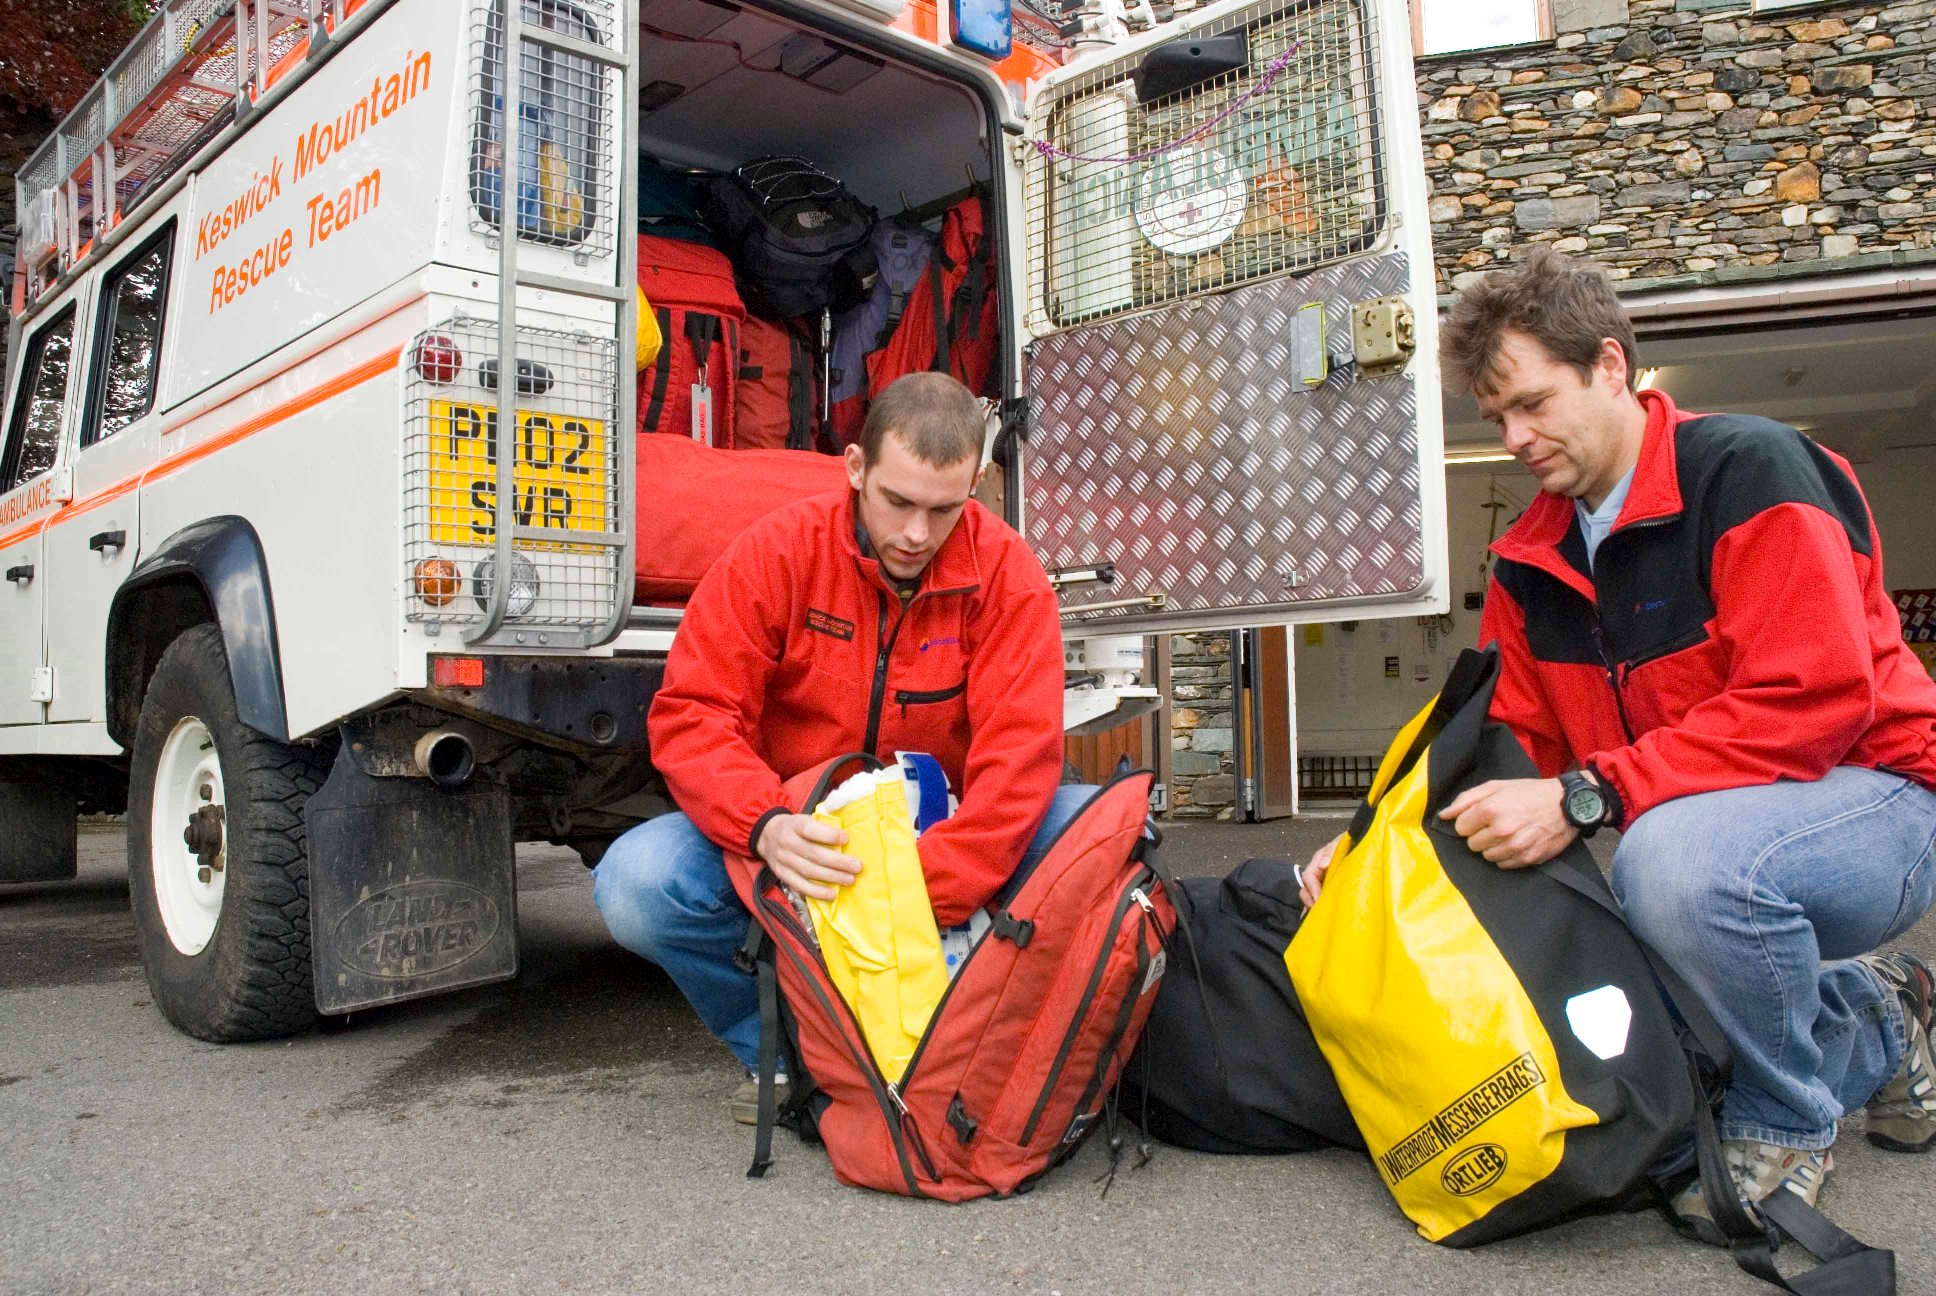 Keswick Mountain Rescue Team members preparing their kit.